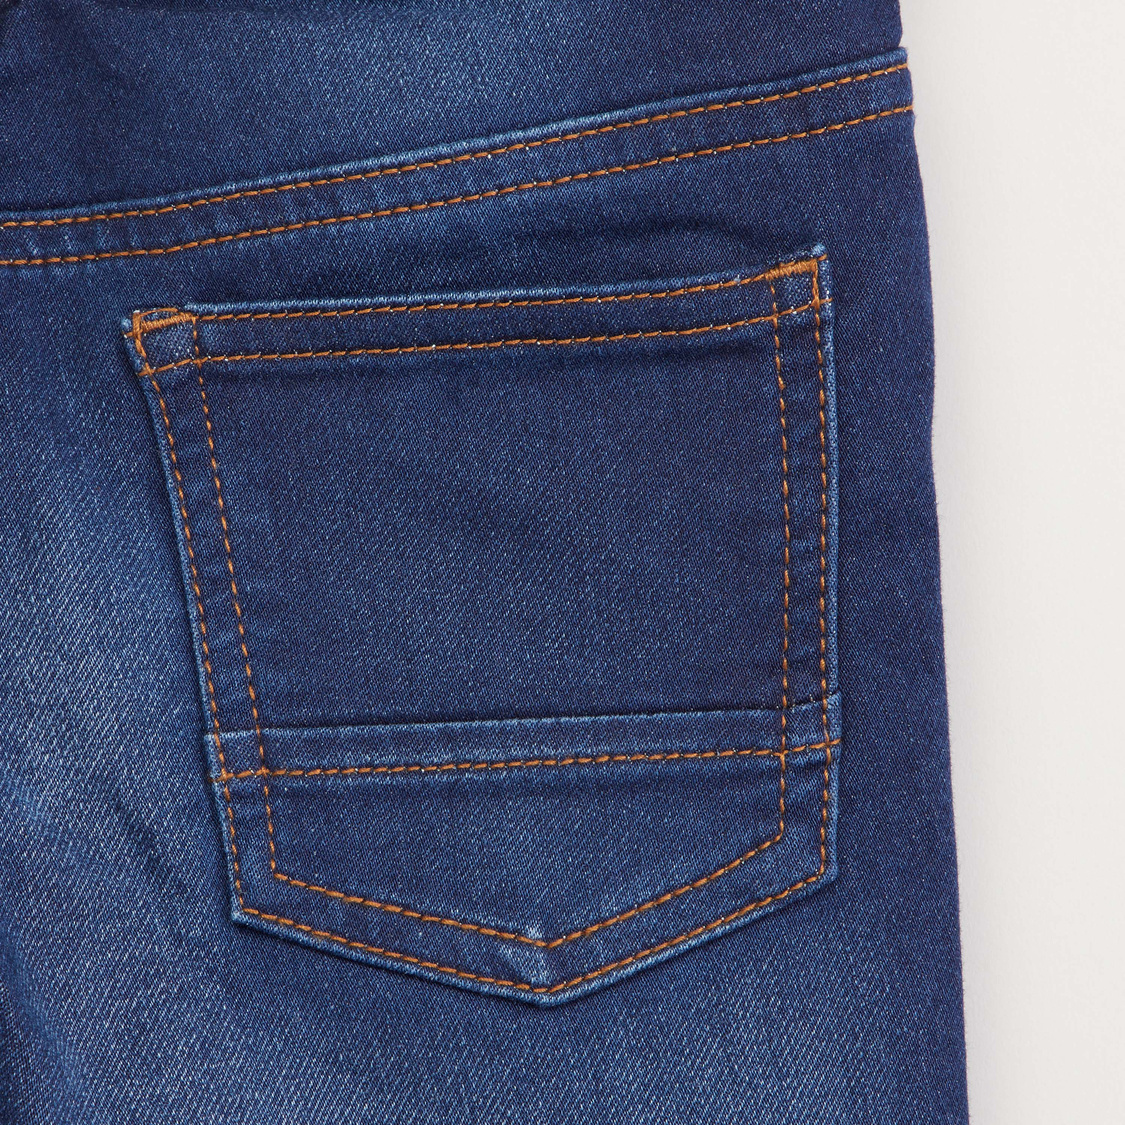 Textured Jeans with Pocket Detail and Drawstring